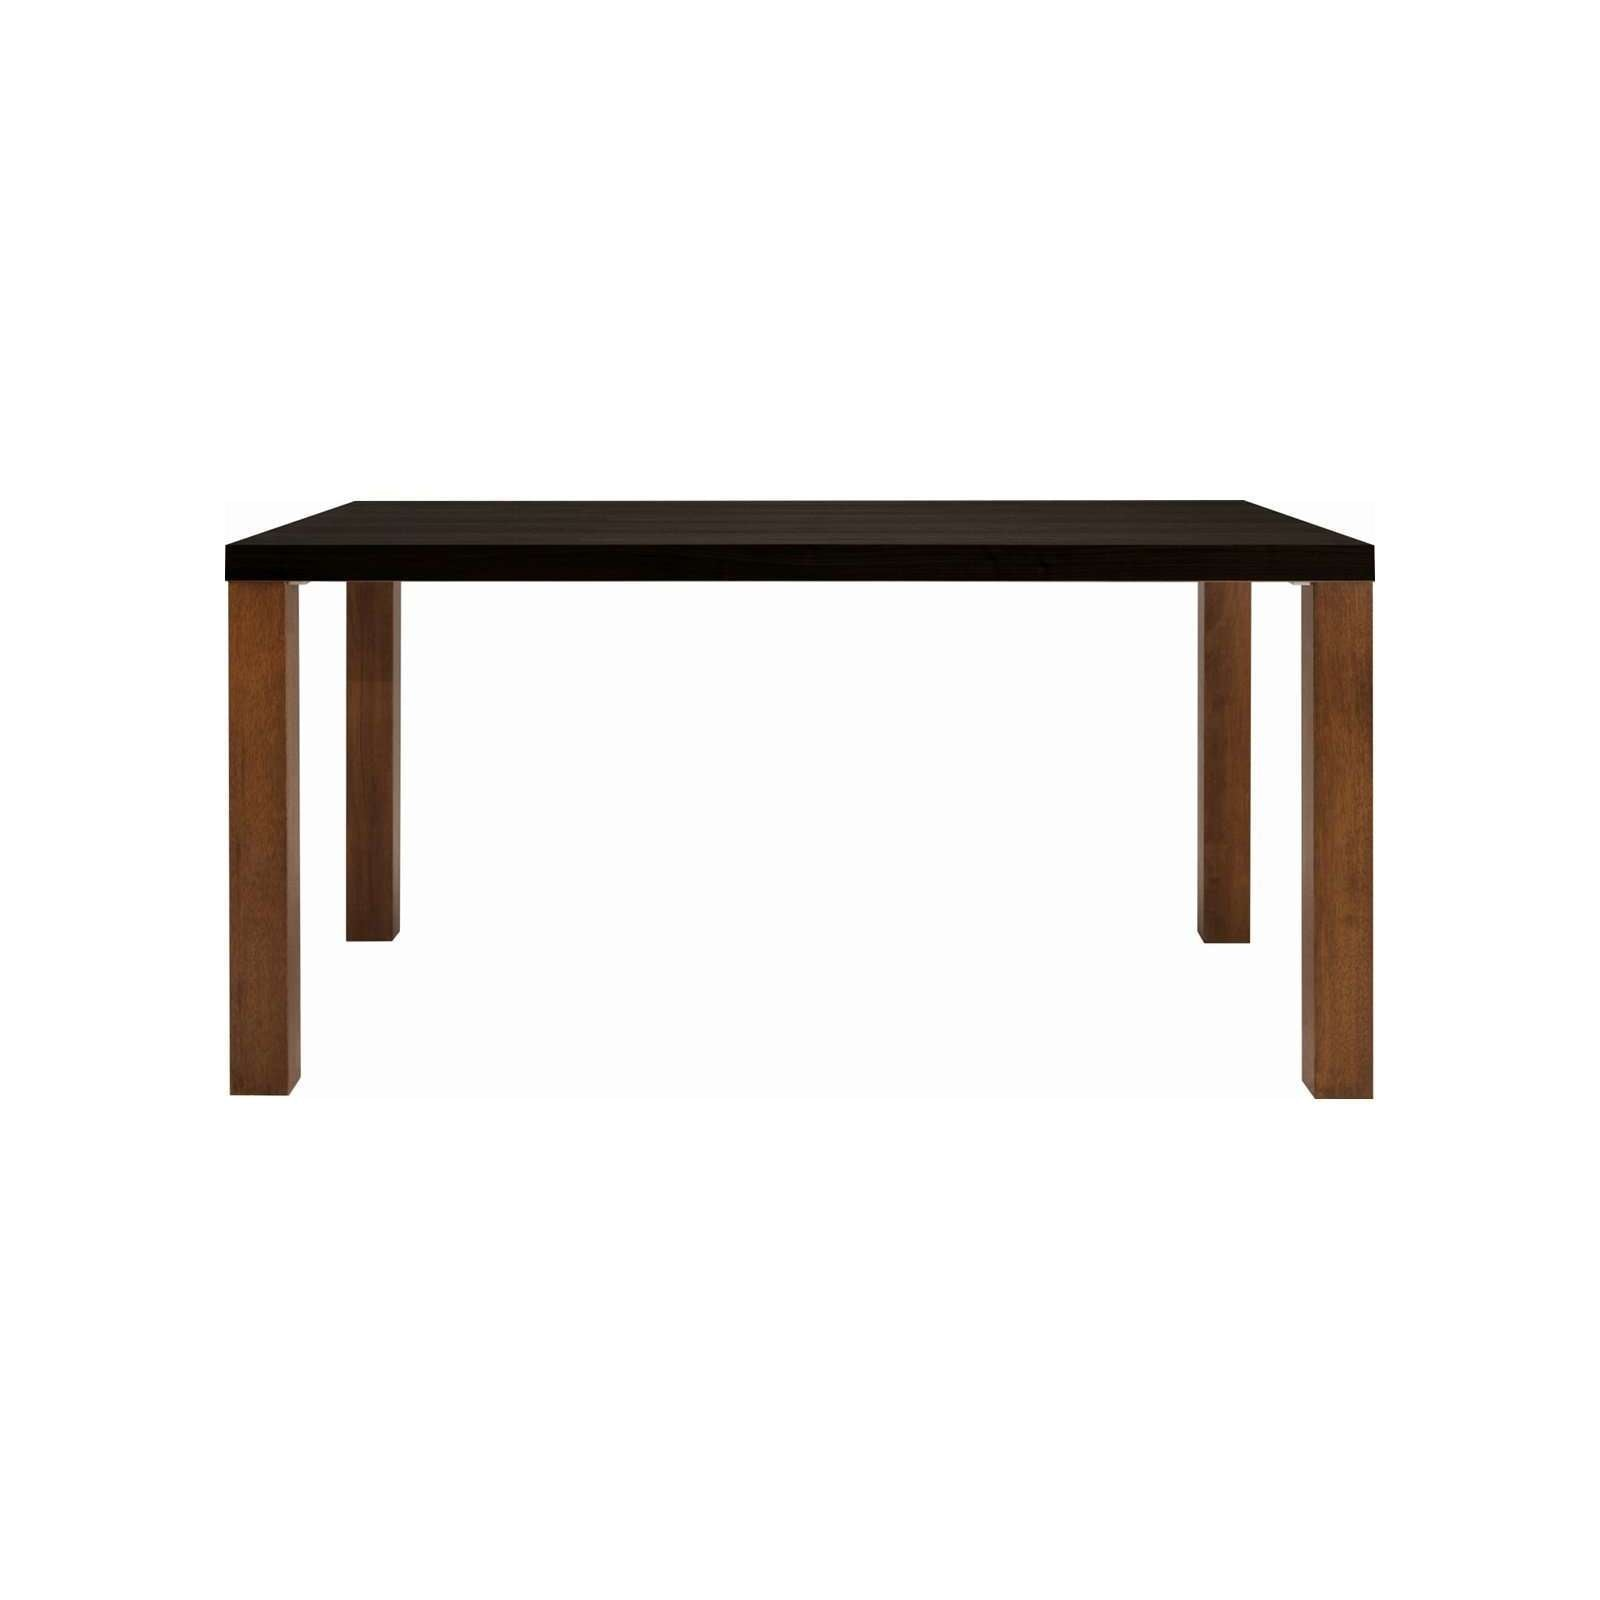 BRENT 1.5m Table in Black - Stained Ash Veneer with Walnut Color Straight Leg